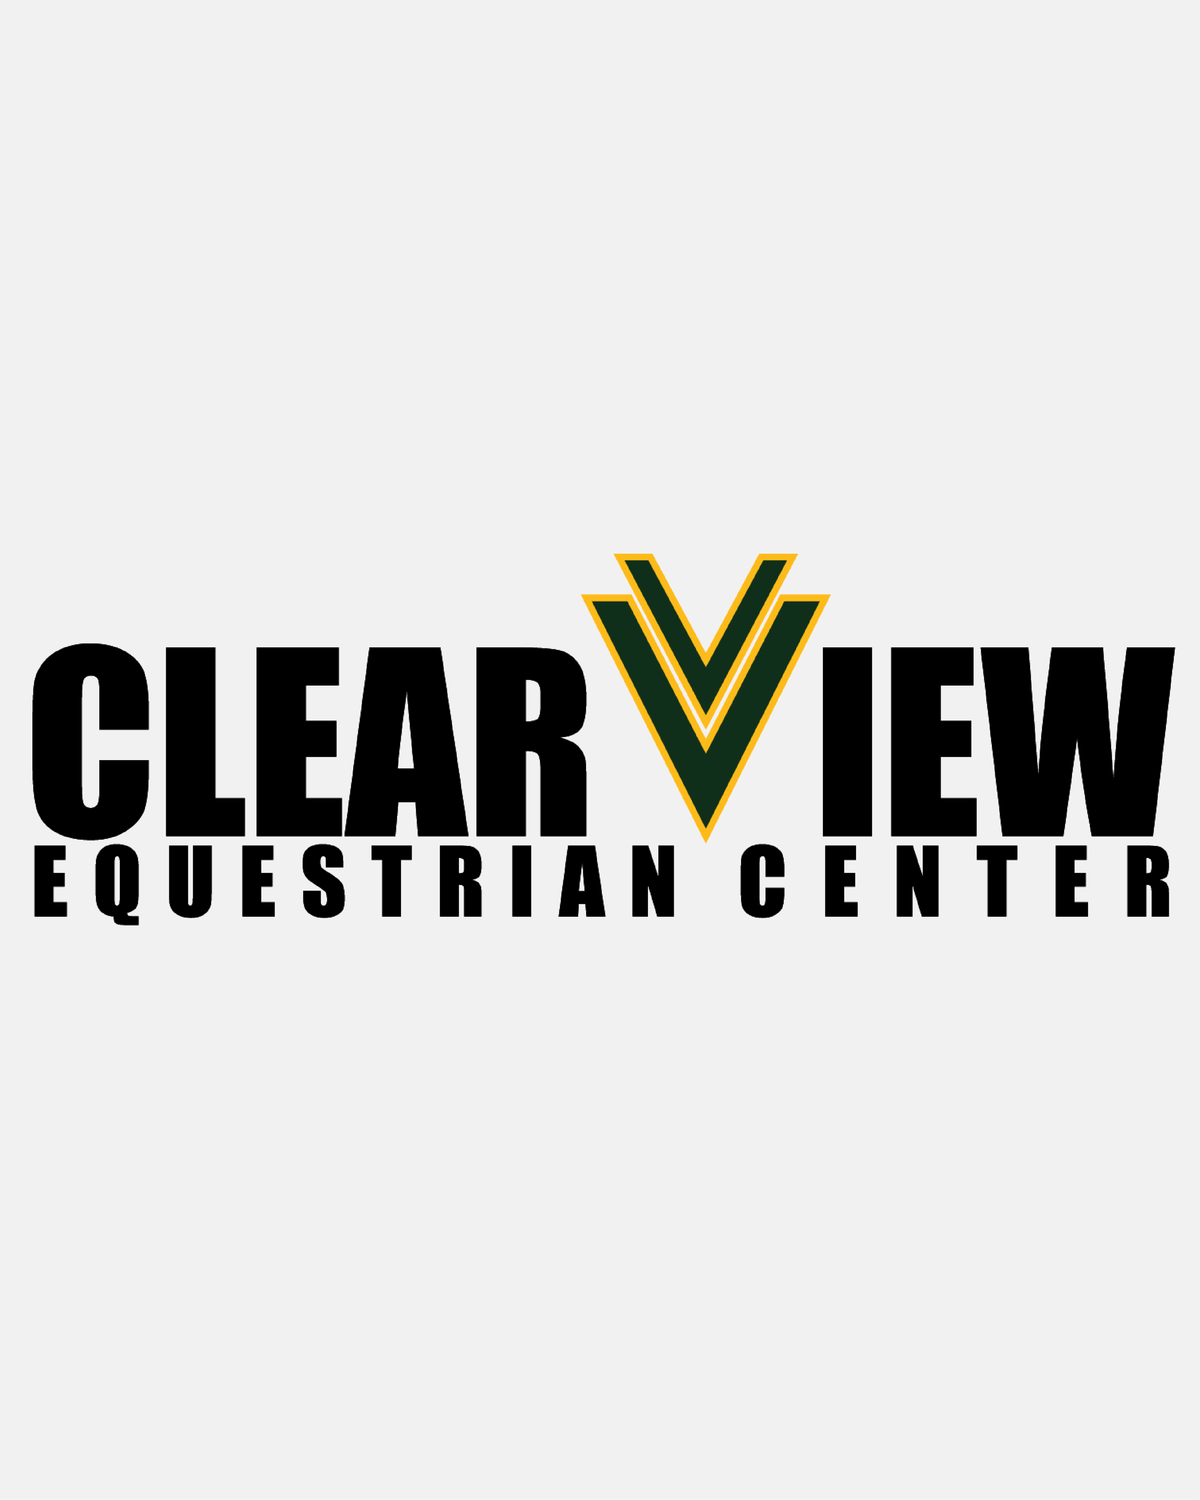 ClearViewEquestrianCenter_Mod 1